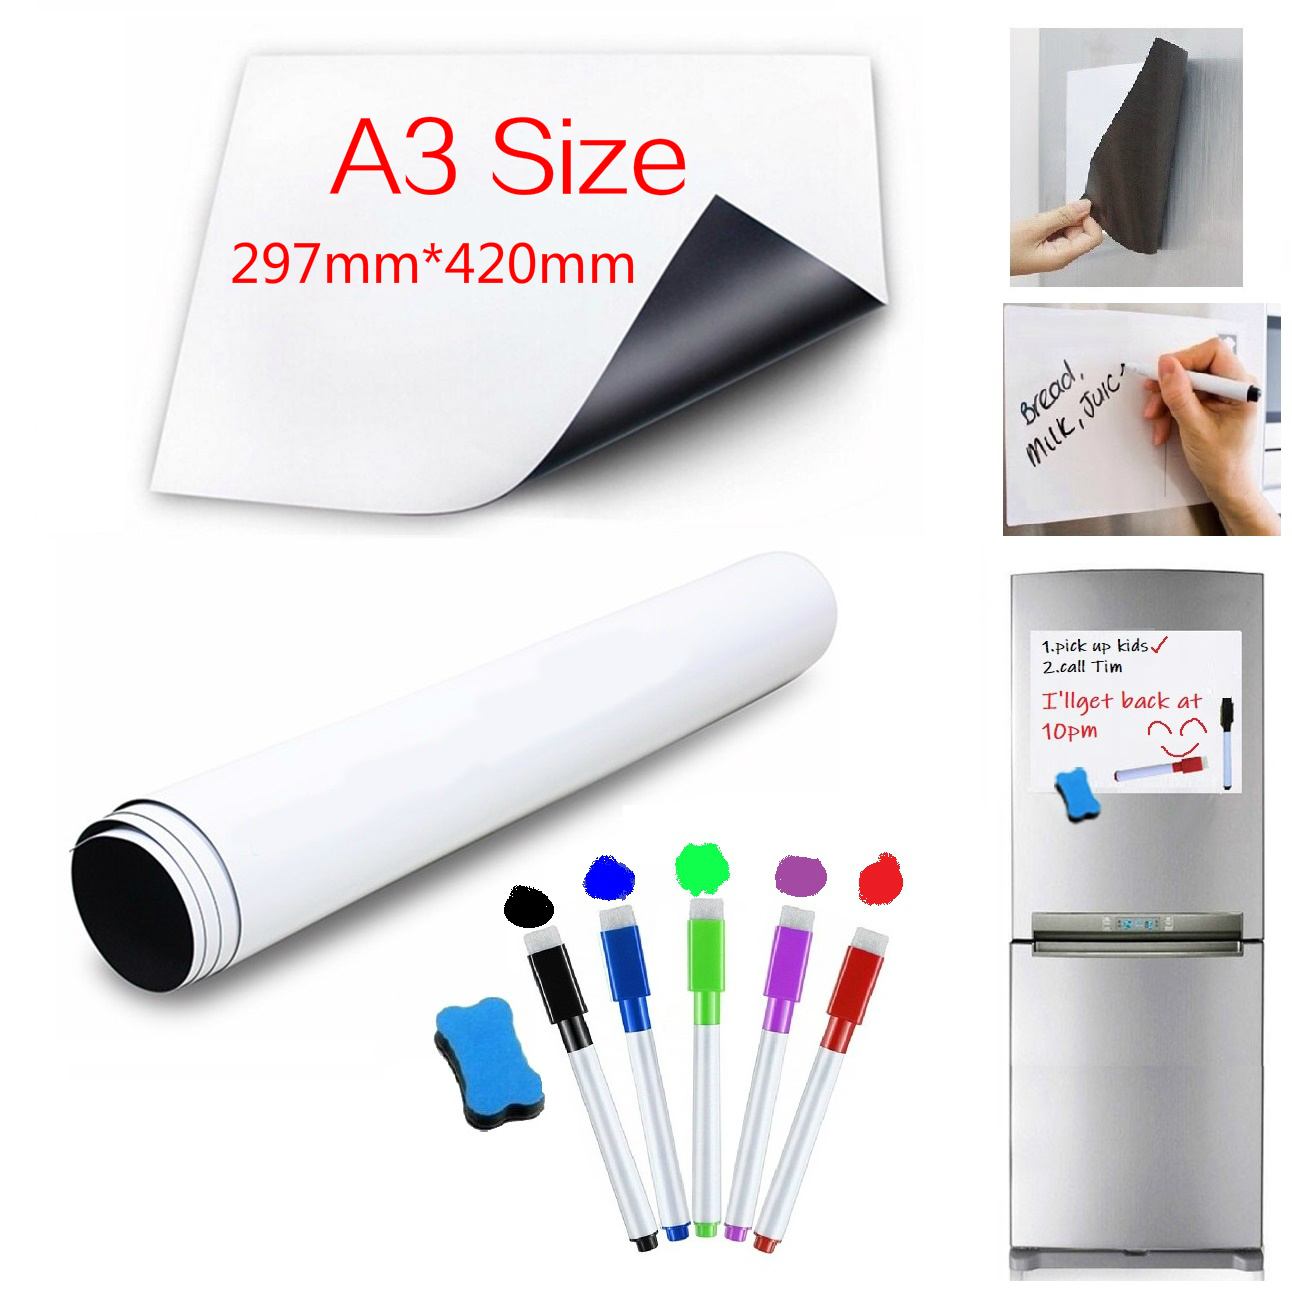 A3 Size Magnetic Whiteboard For Fridge Magnet Kitchen Magnets Sticker Dry Wipe White Board Marker Pen Eraser Write Notepad Memo